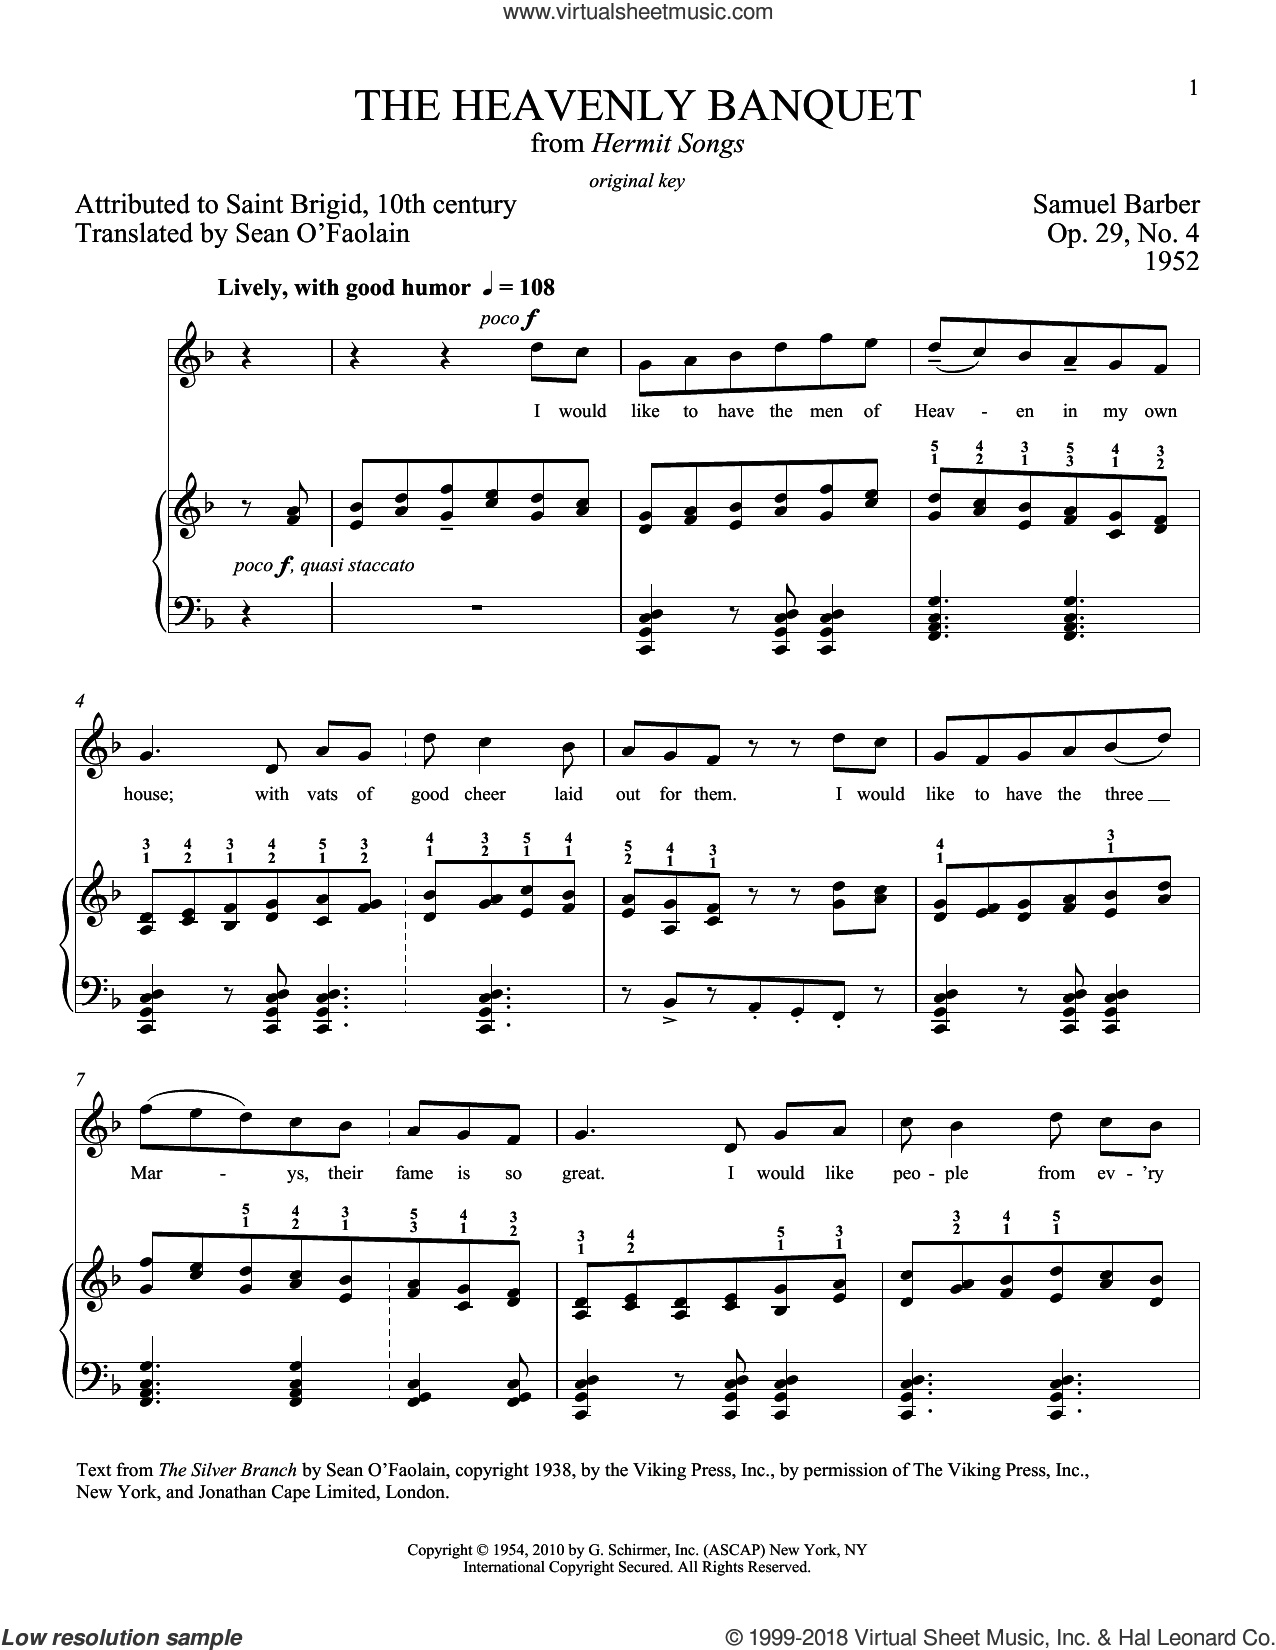 The Heavenly Banquet, Op. 29, No. 4 sheet music for voice and piano (High Voice) by Samuel Barber and Richard Walters, intermediate skill level